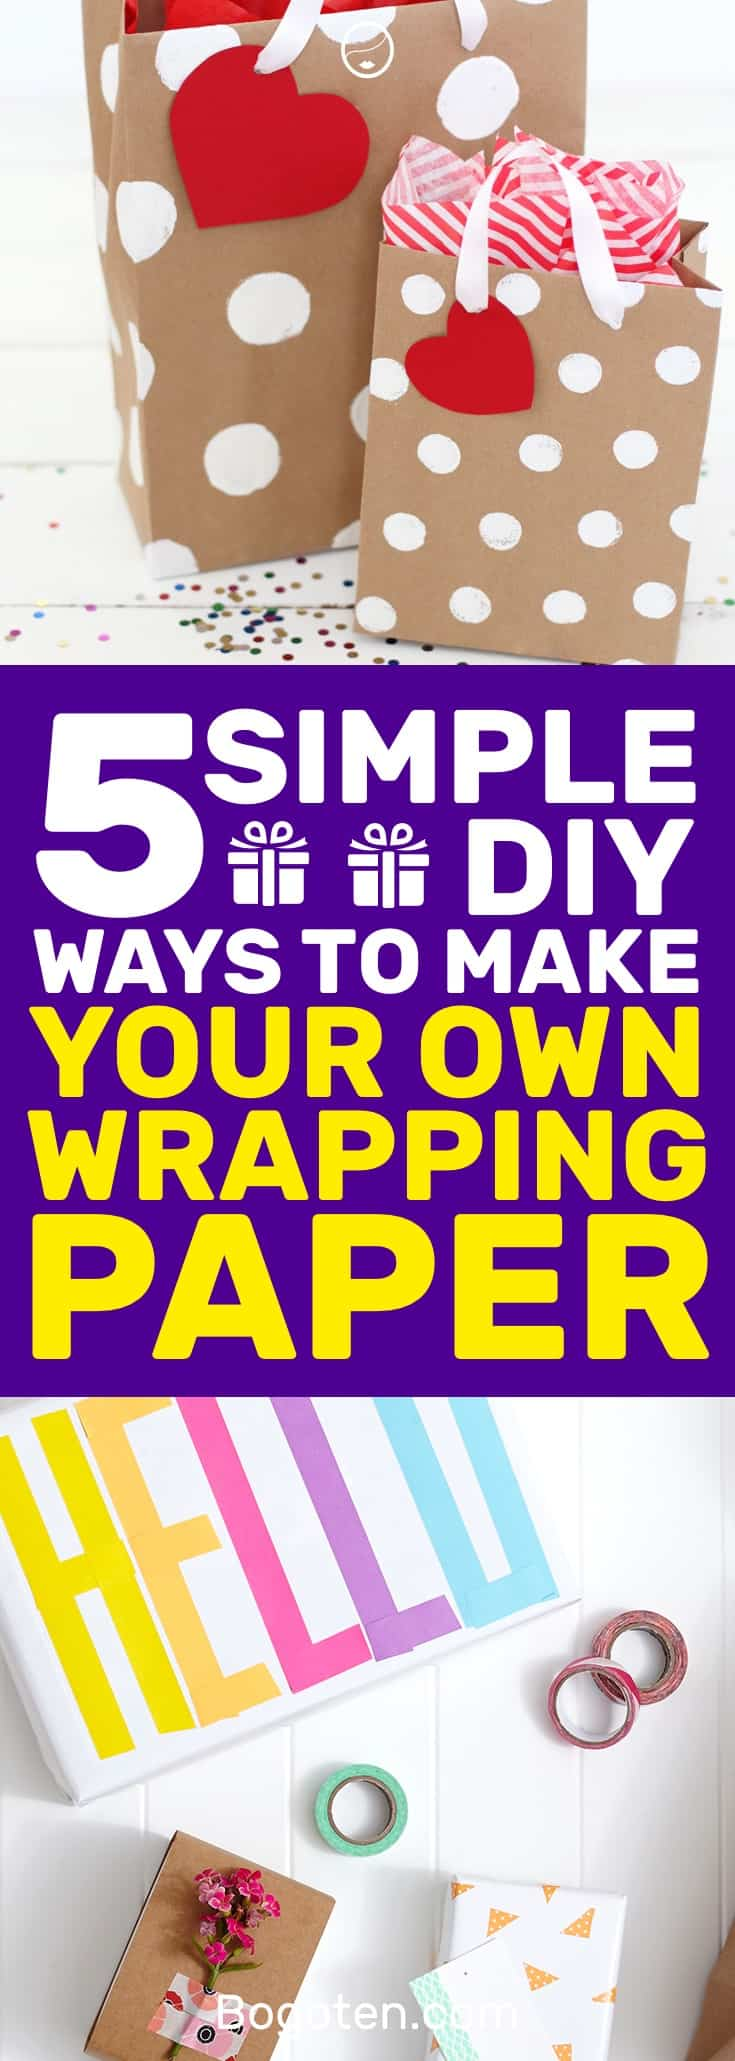 5 Simple Diy Ways To Make Your Own Wrapping Paper